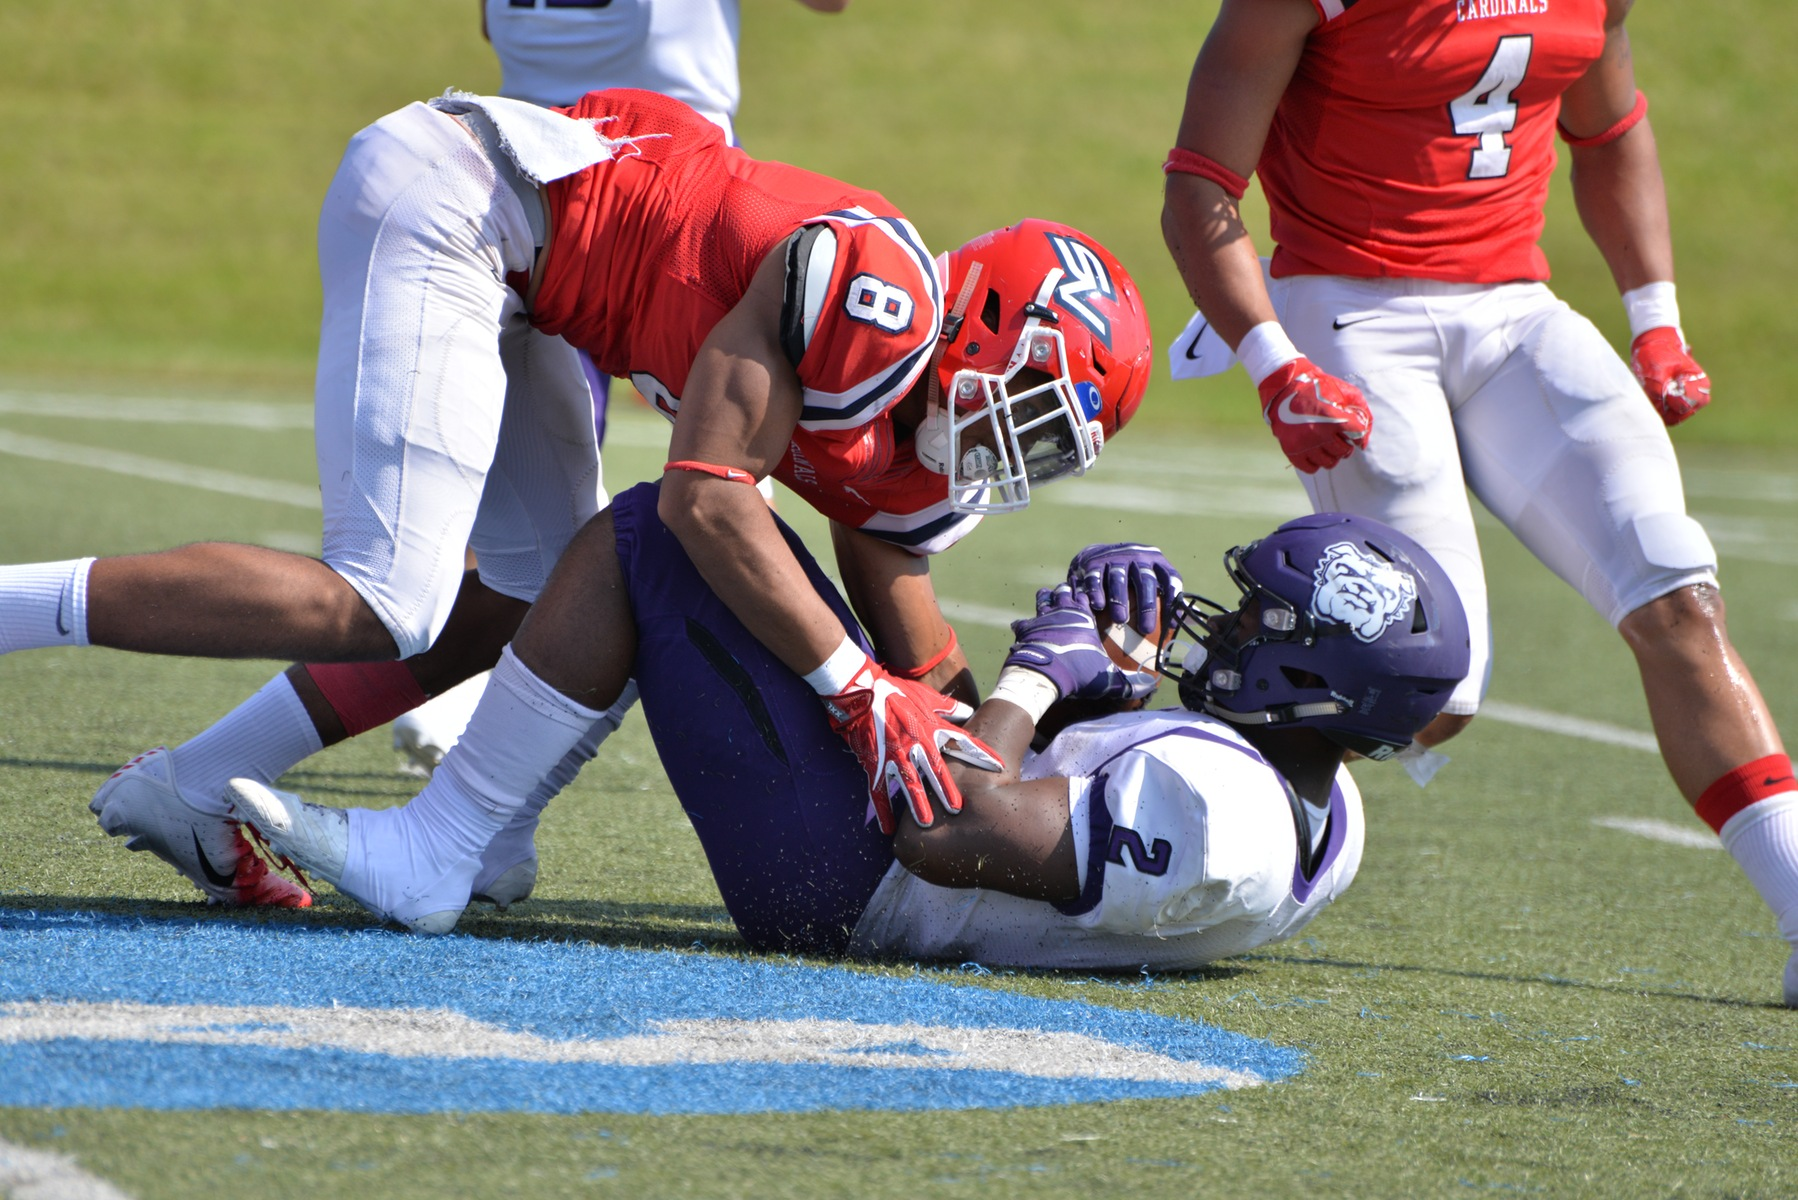 SVSU Remains Undefeated with GLIAC Overtime Win Versus Wayne State, 35-29